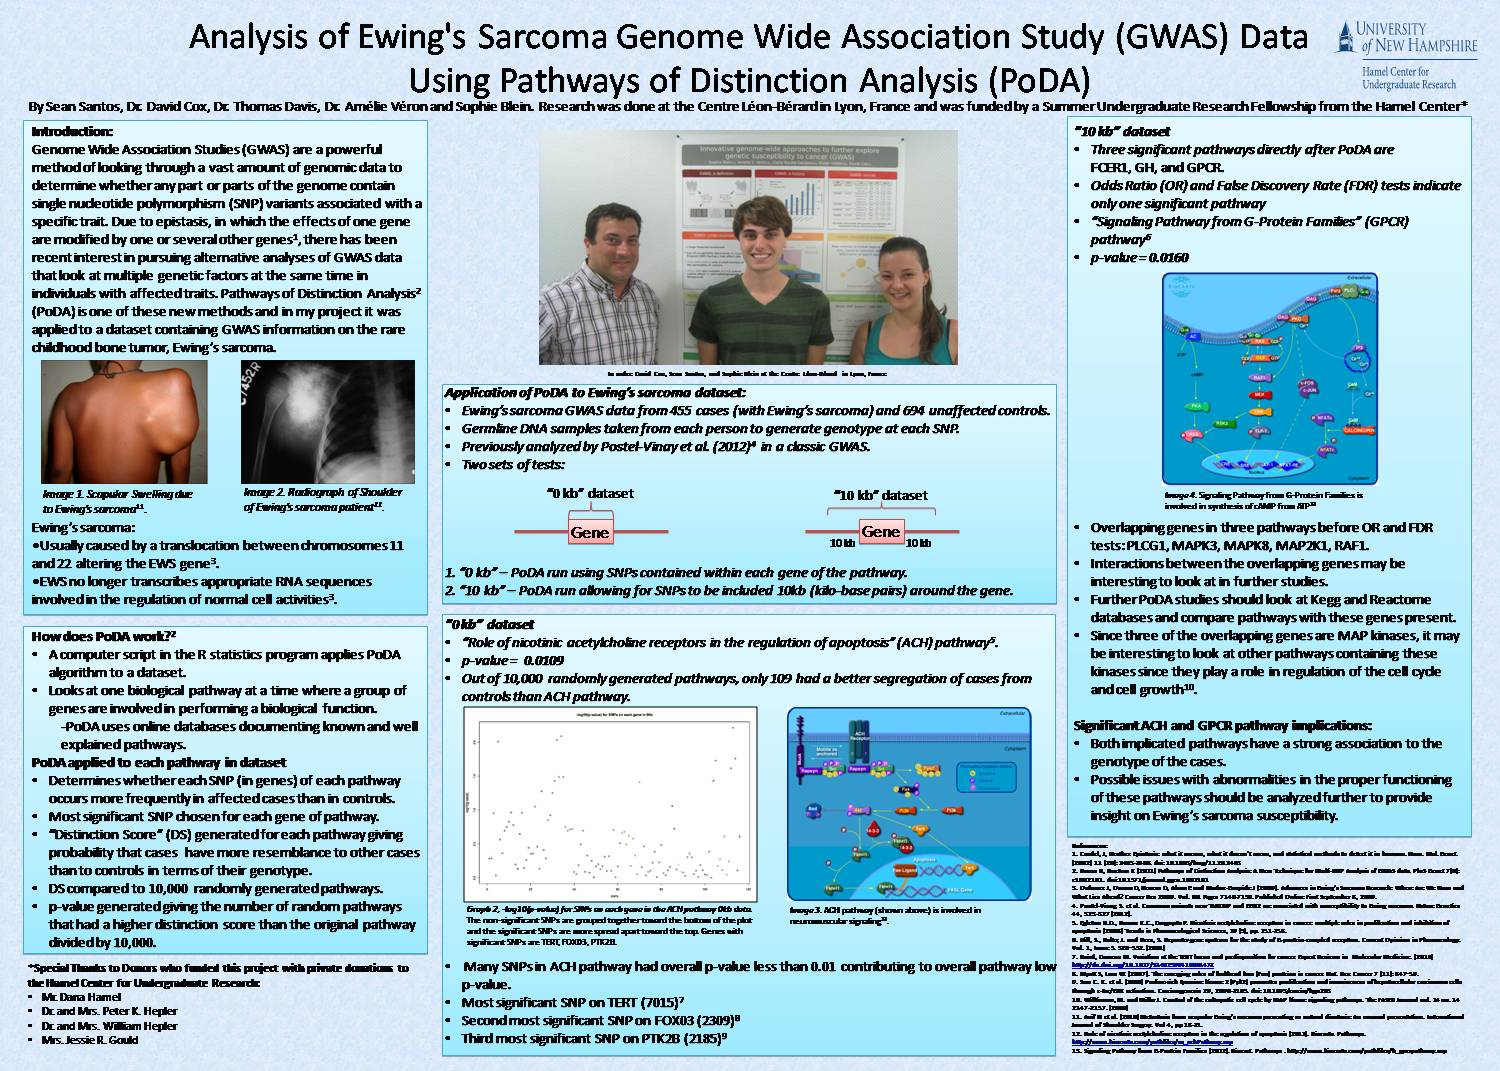 Analysis Of Ewing's Sarcoma Genome Wide Association Study Data Using Pathways Of Distinction Analysis by ssantos18